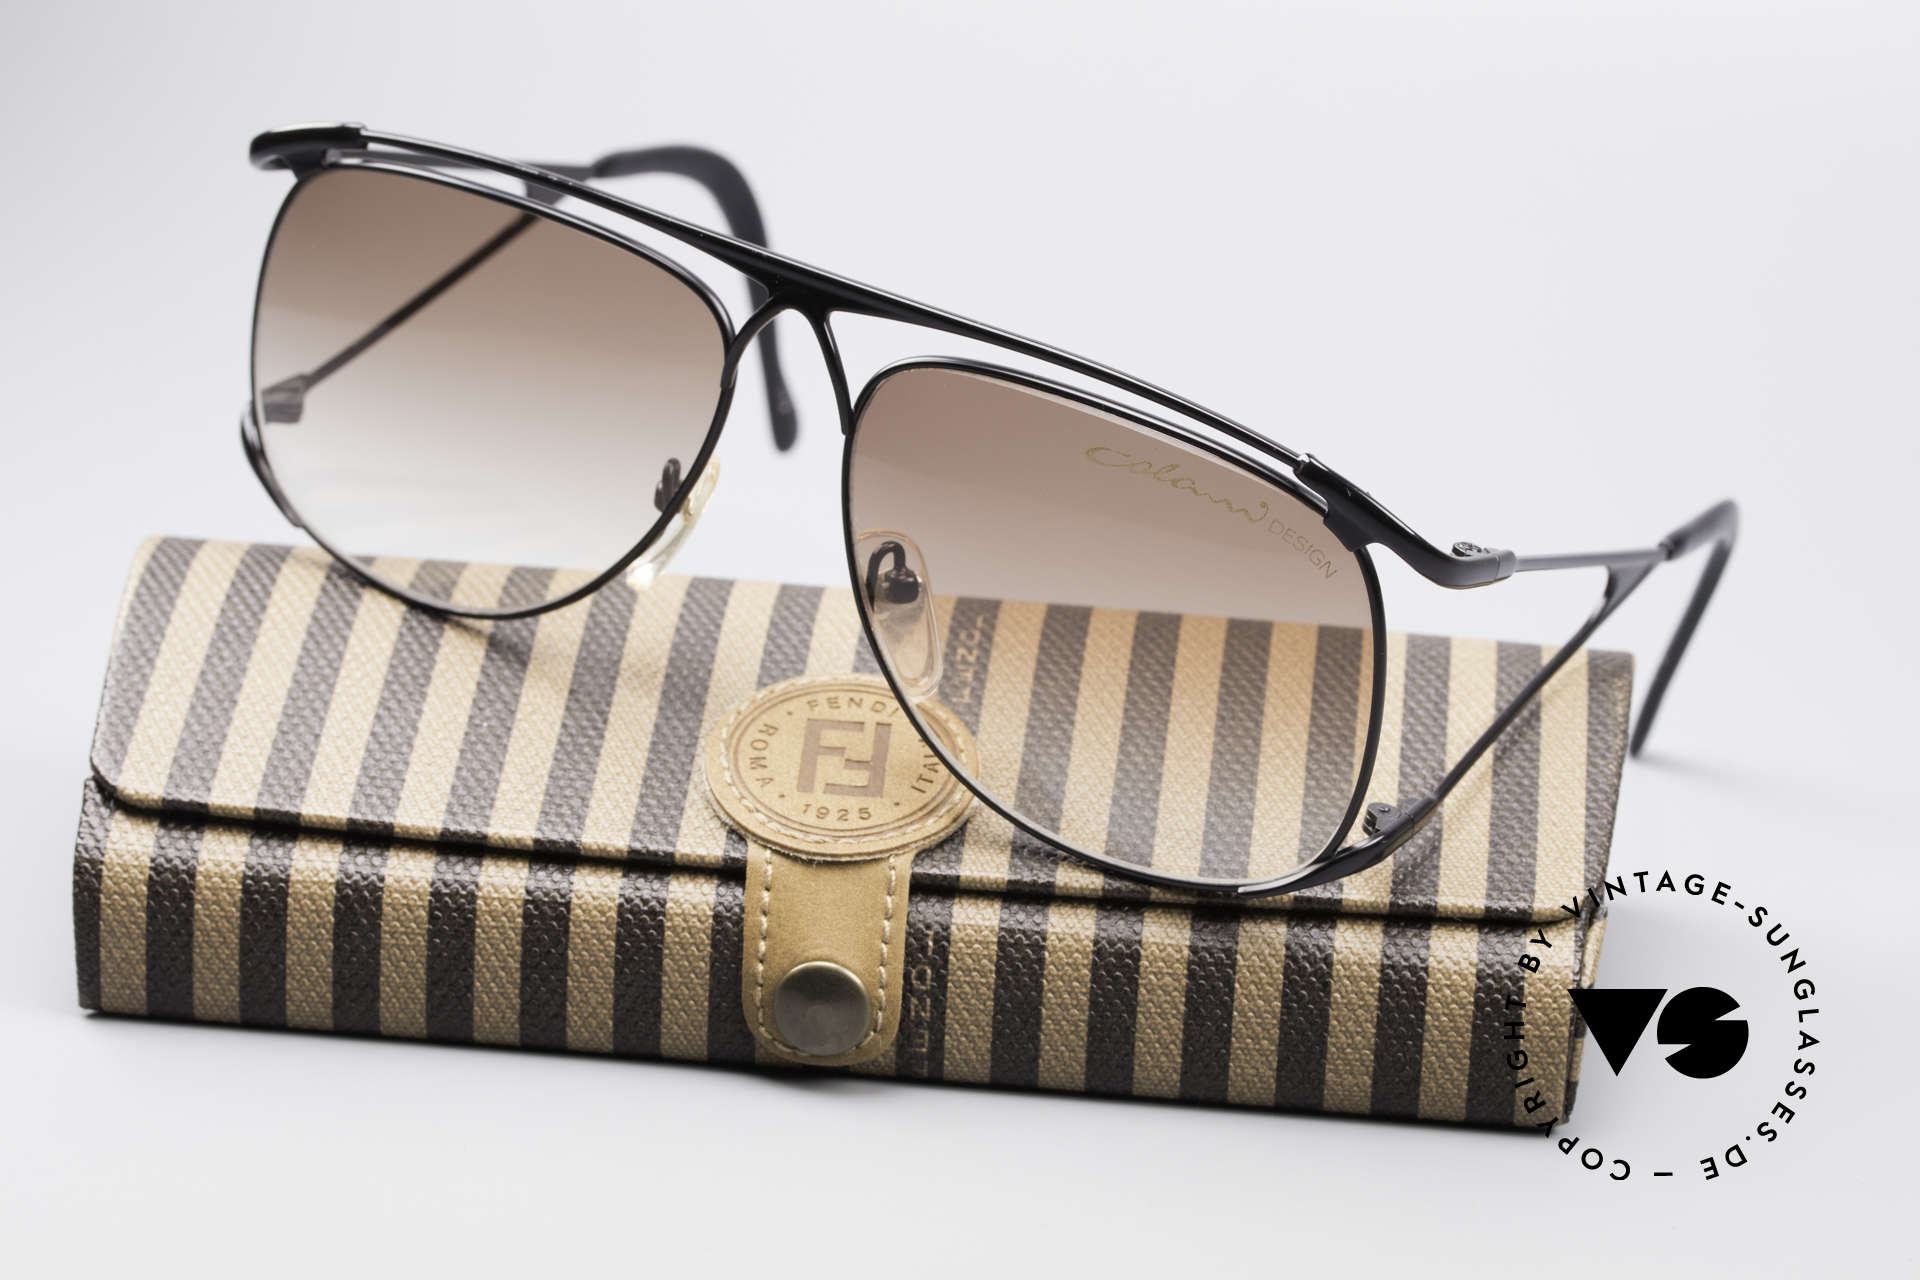 Colani 15-501 Rare 80's Designer Glasses, this spectacular model comes with a FENDI case, Made for Men